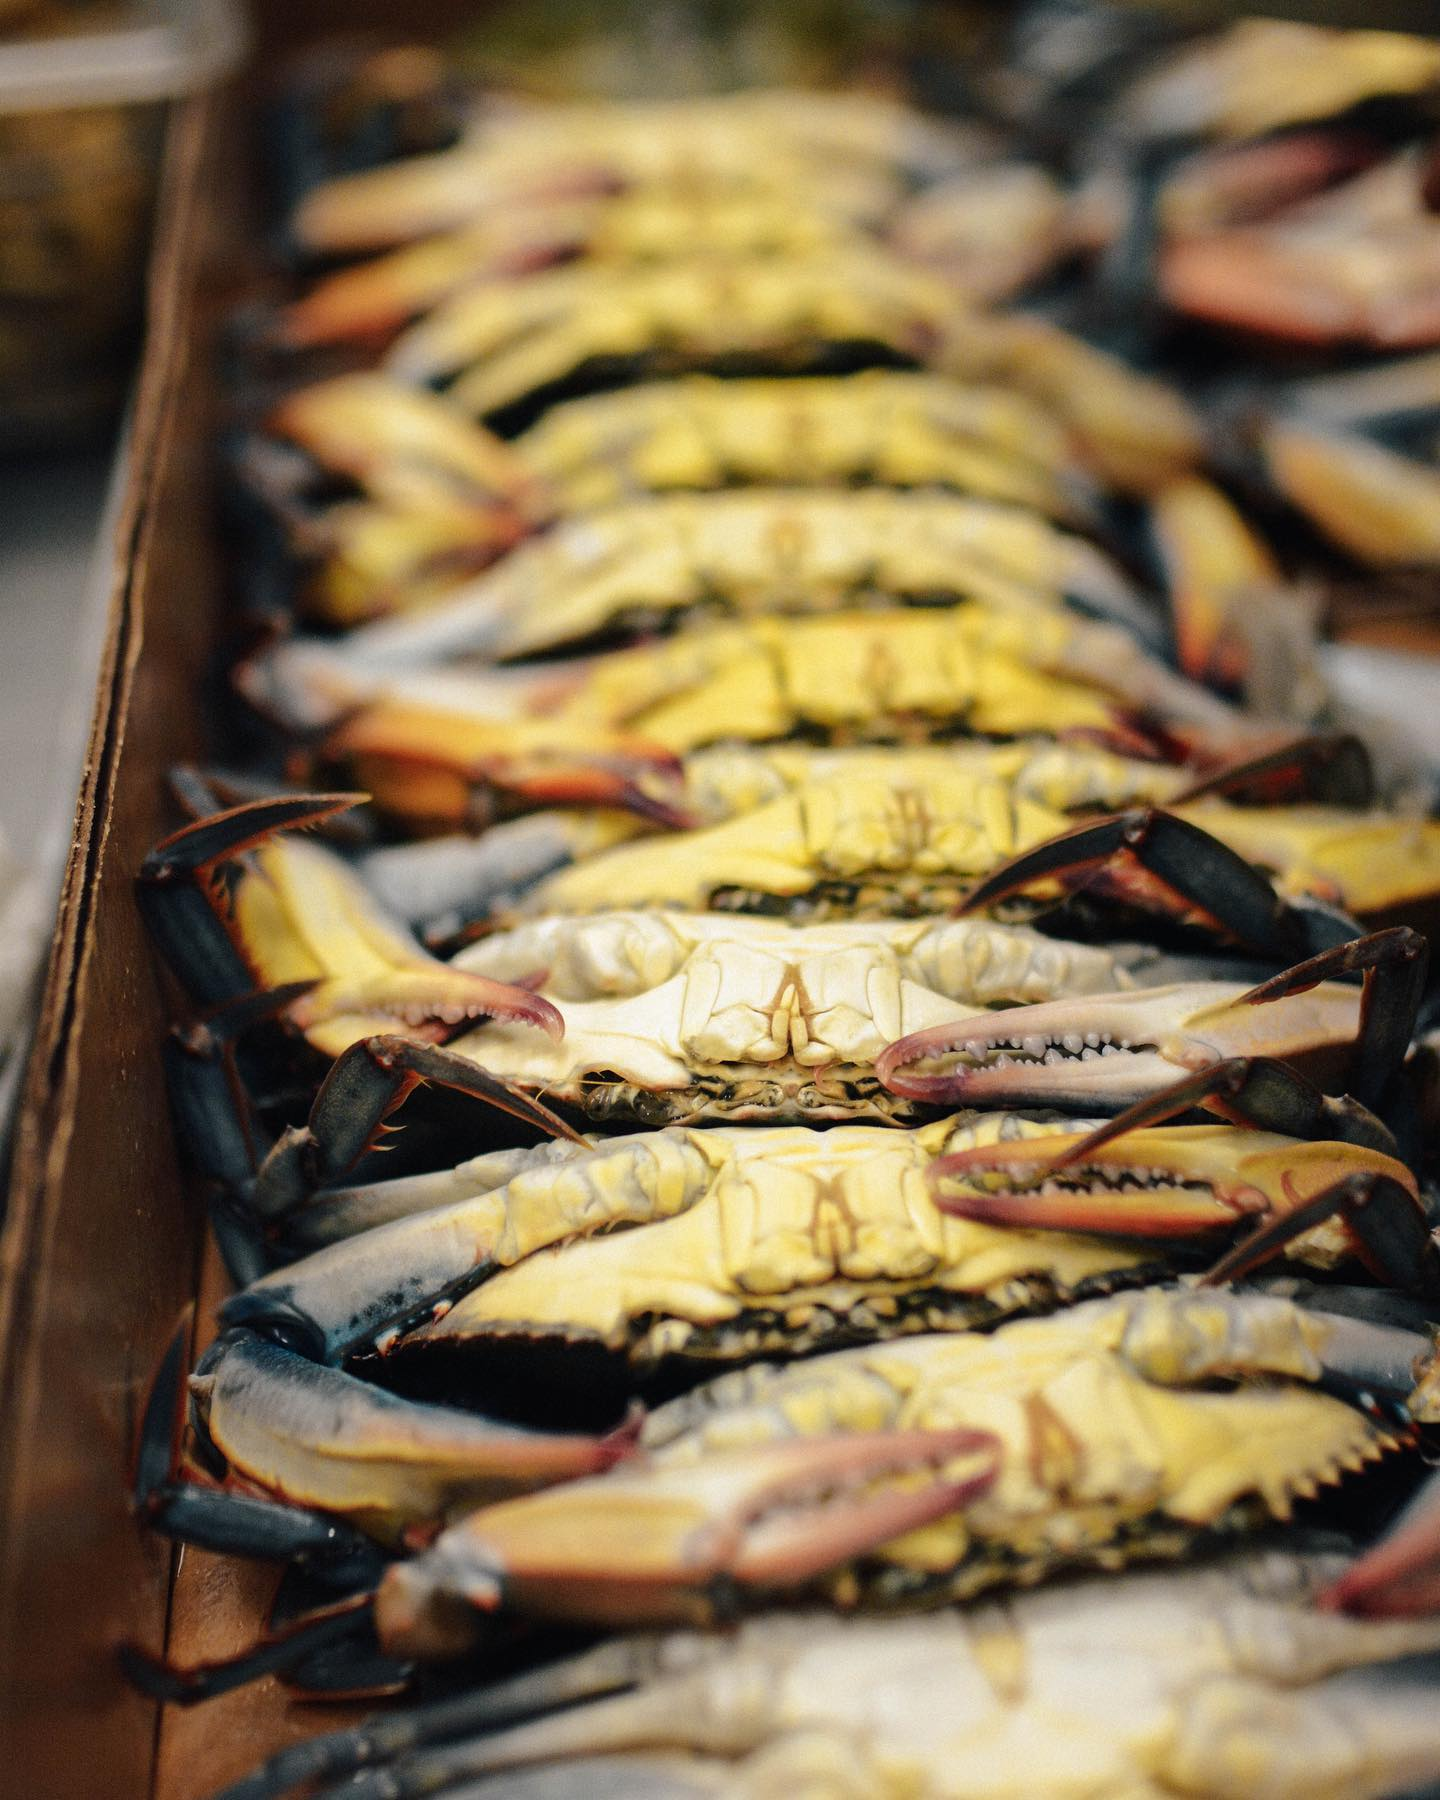 A row of uncooked soft shell crabs line a cardboard box